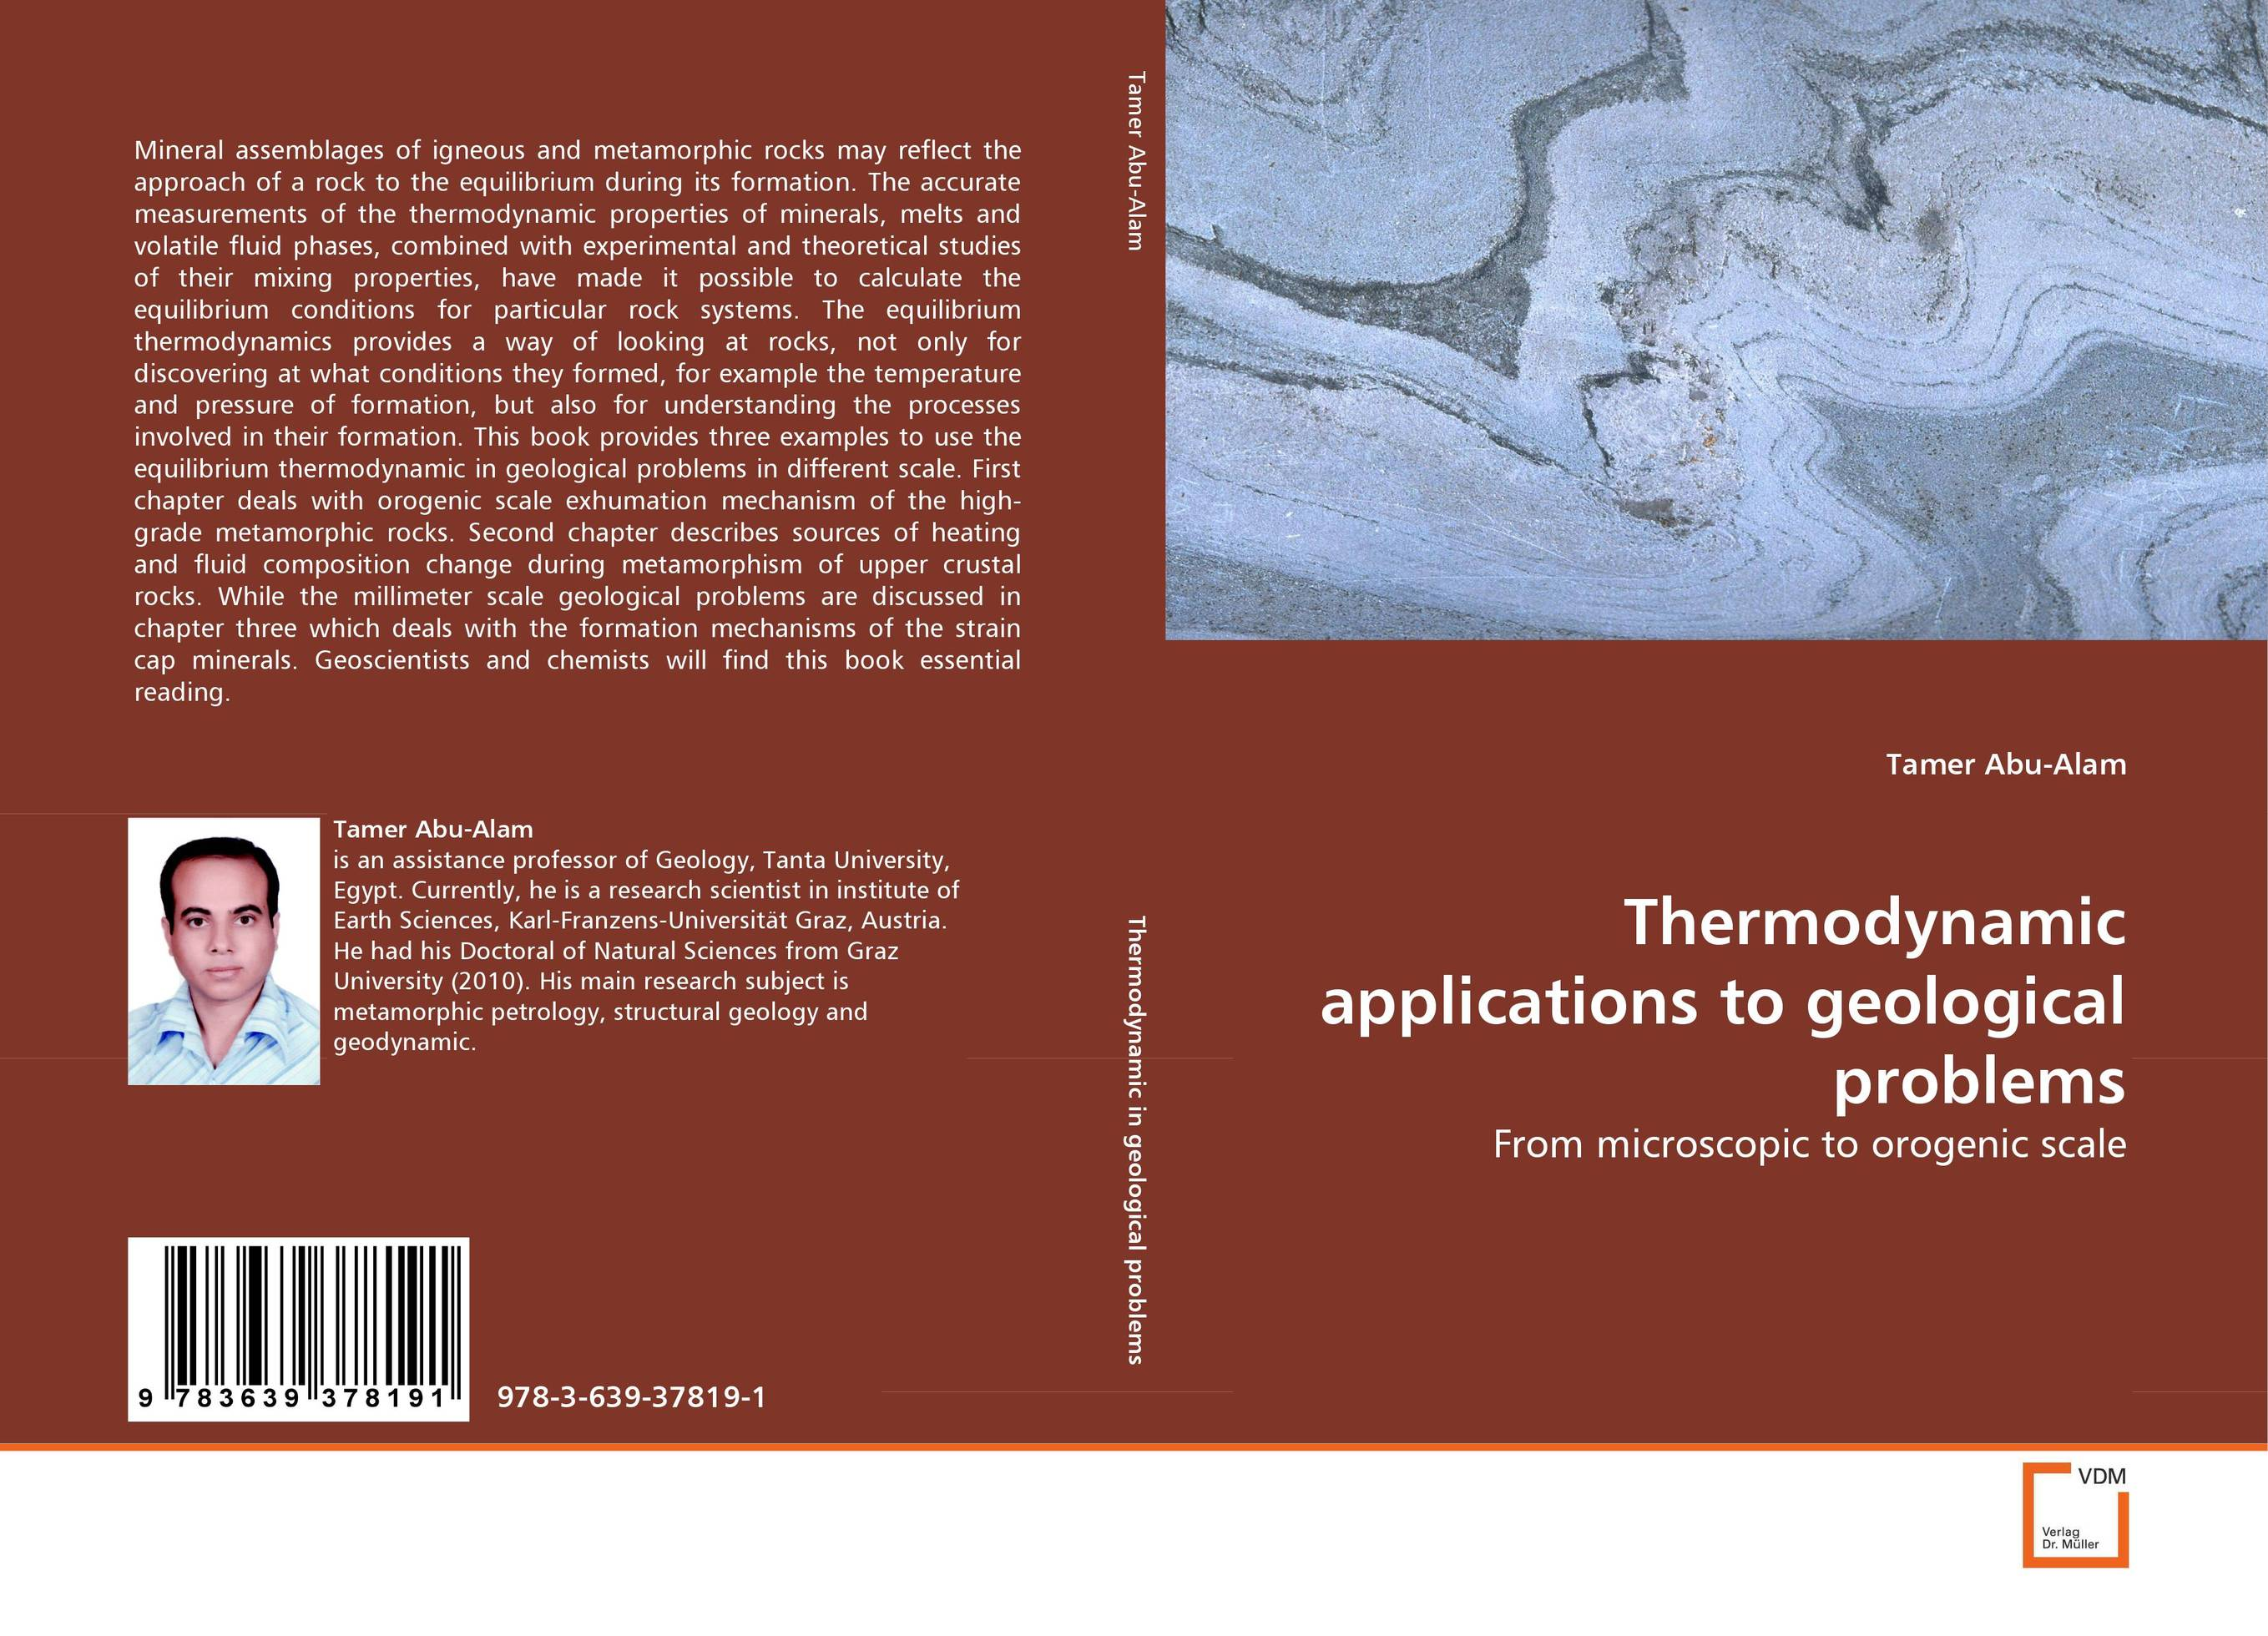 Thermodynamic applications to geological problems